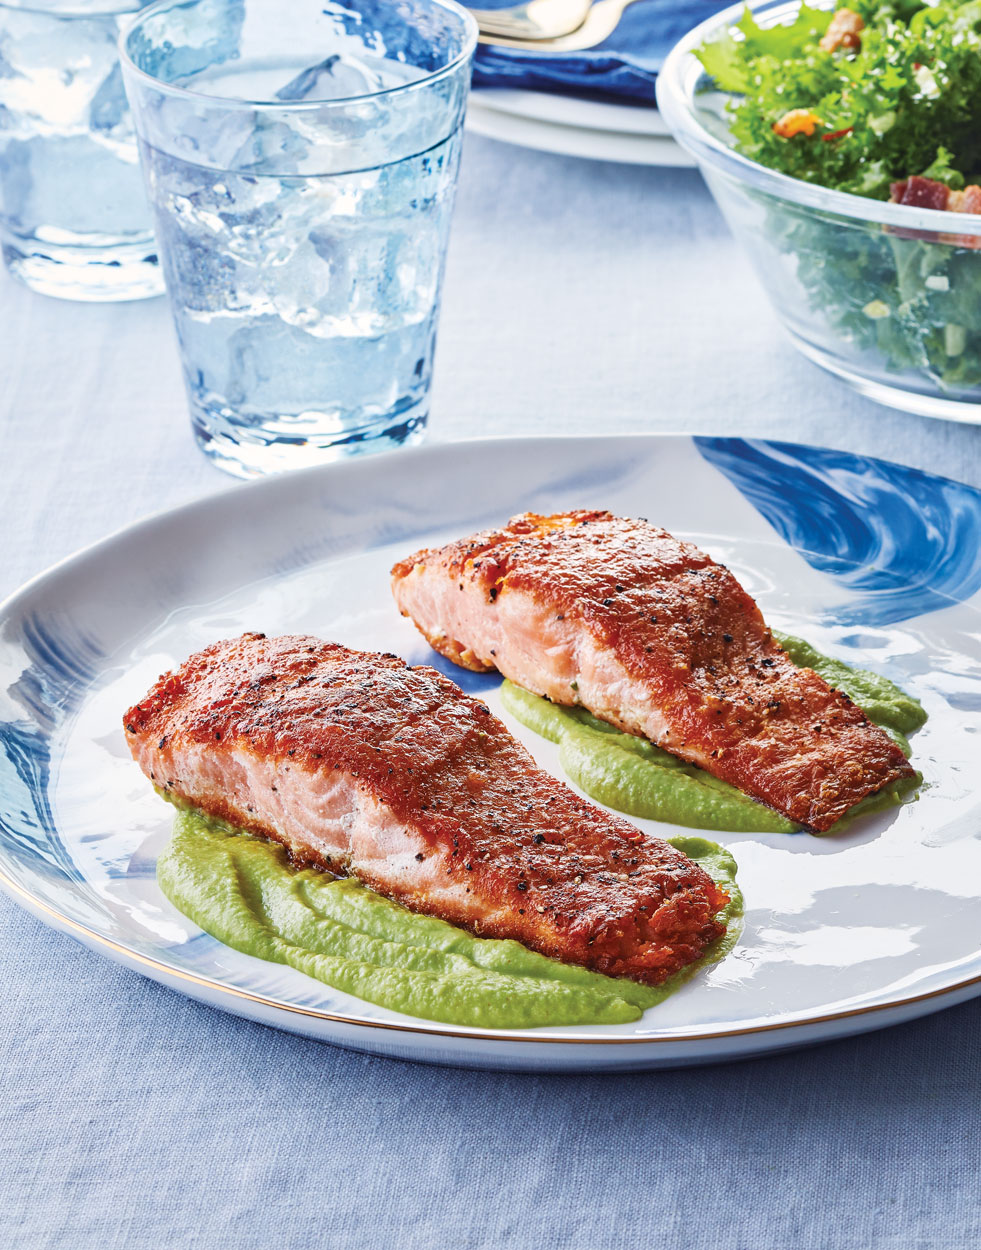 Seared Salmon with Green Pea Purée